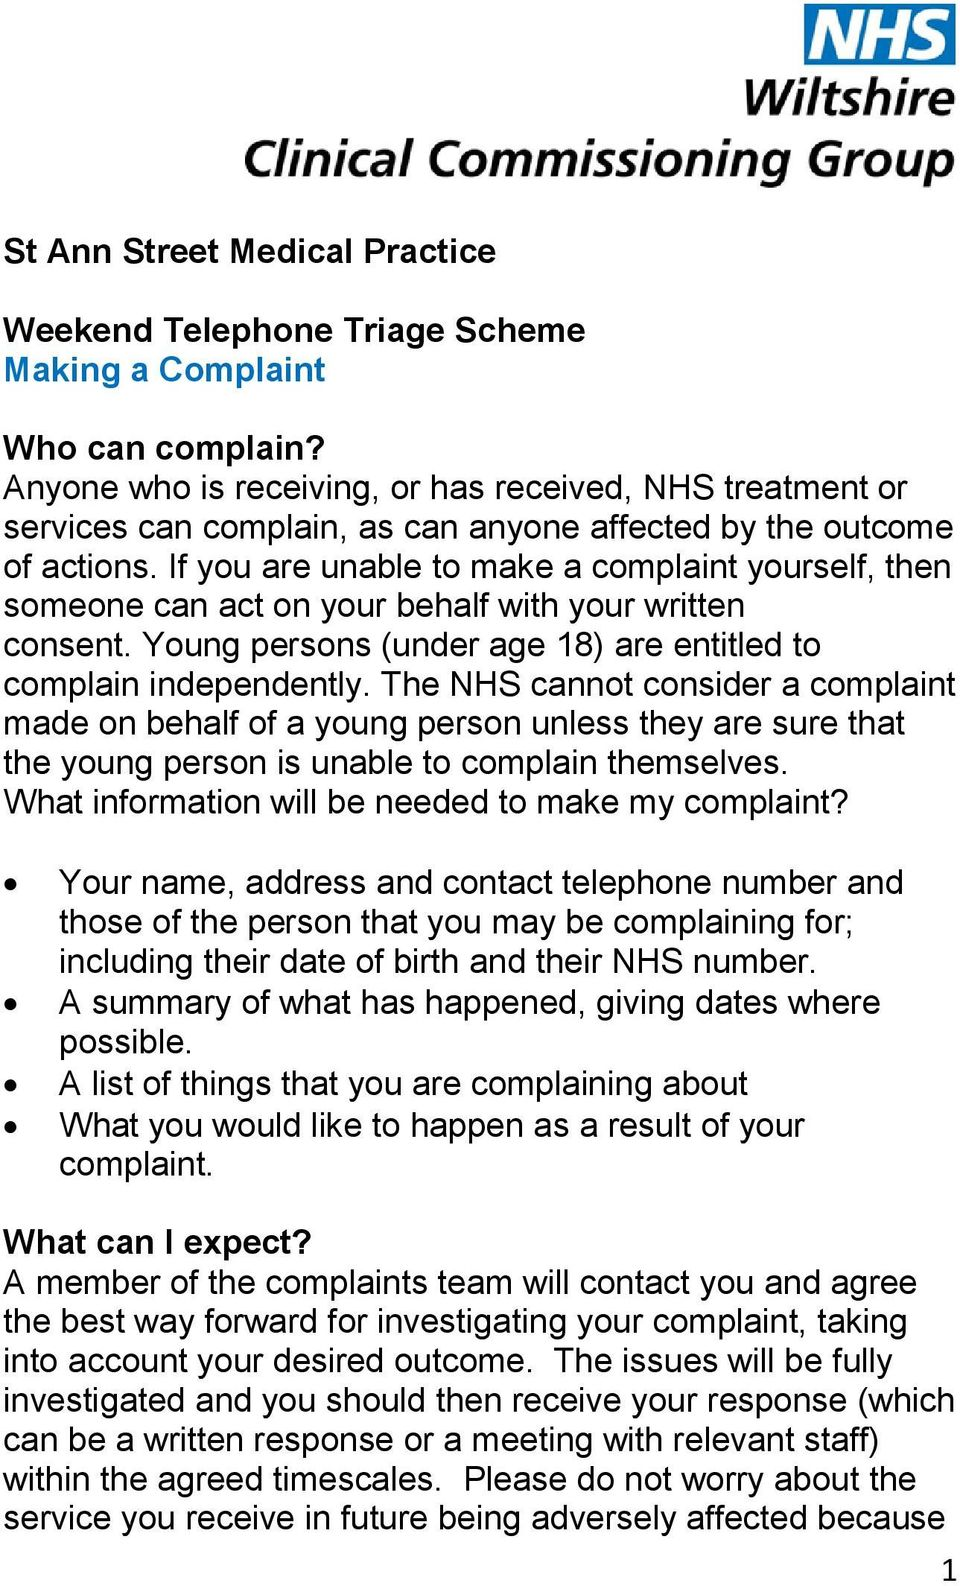 If you are unable to make a complaint yourself, then someone can act on your behalf with your written consent. Young persons (under age 18) are entitled to complain independently.